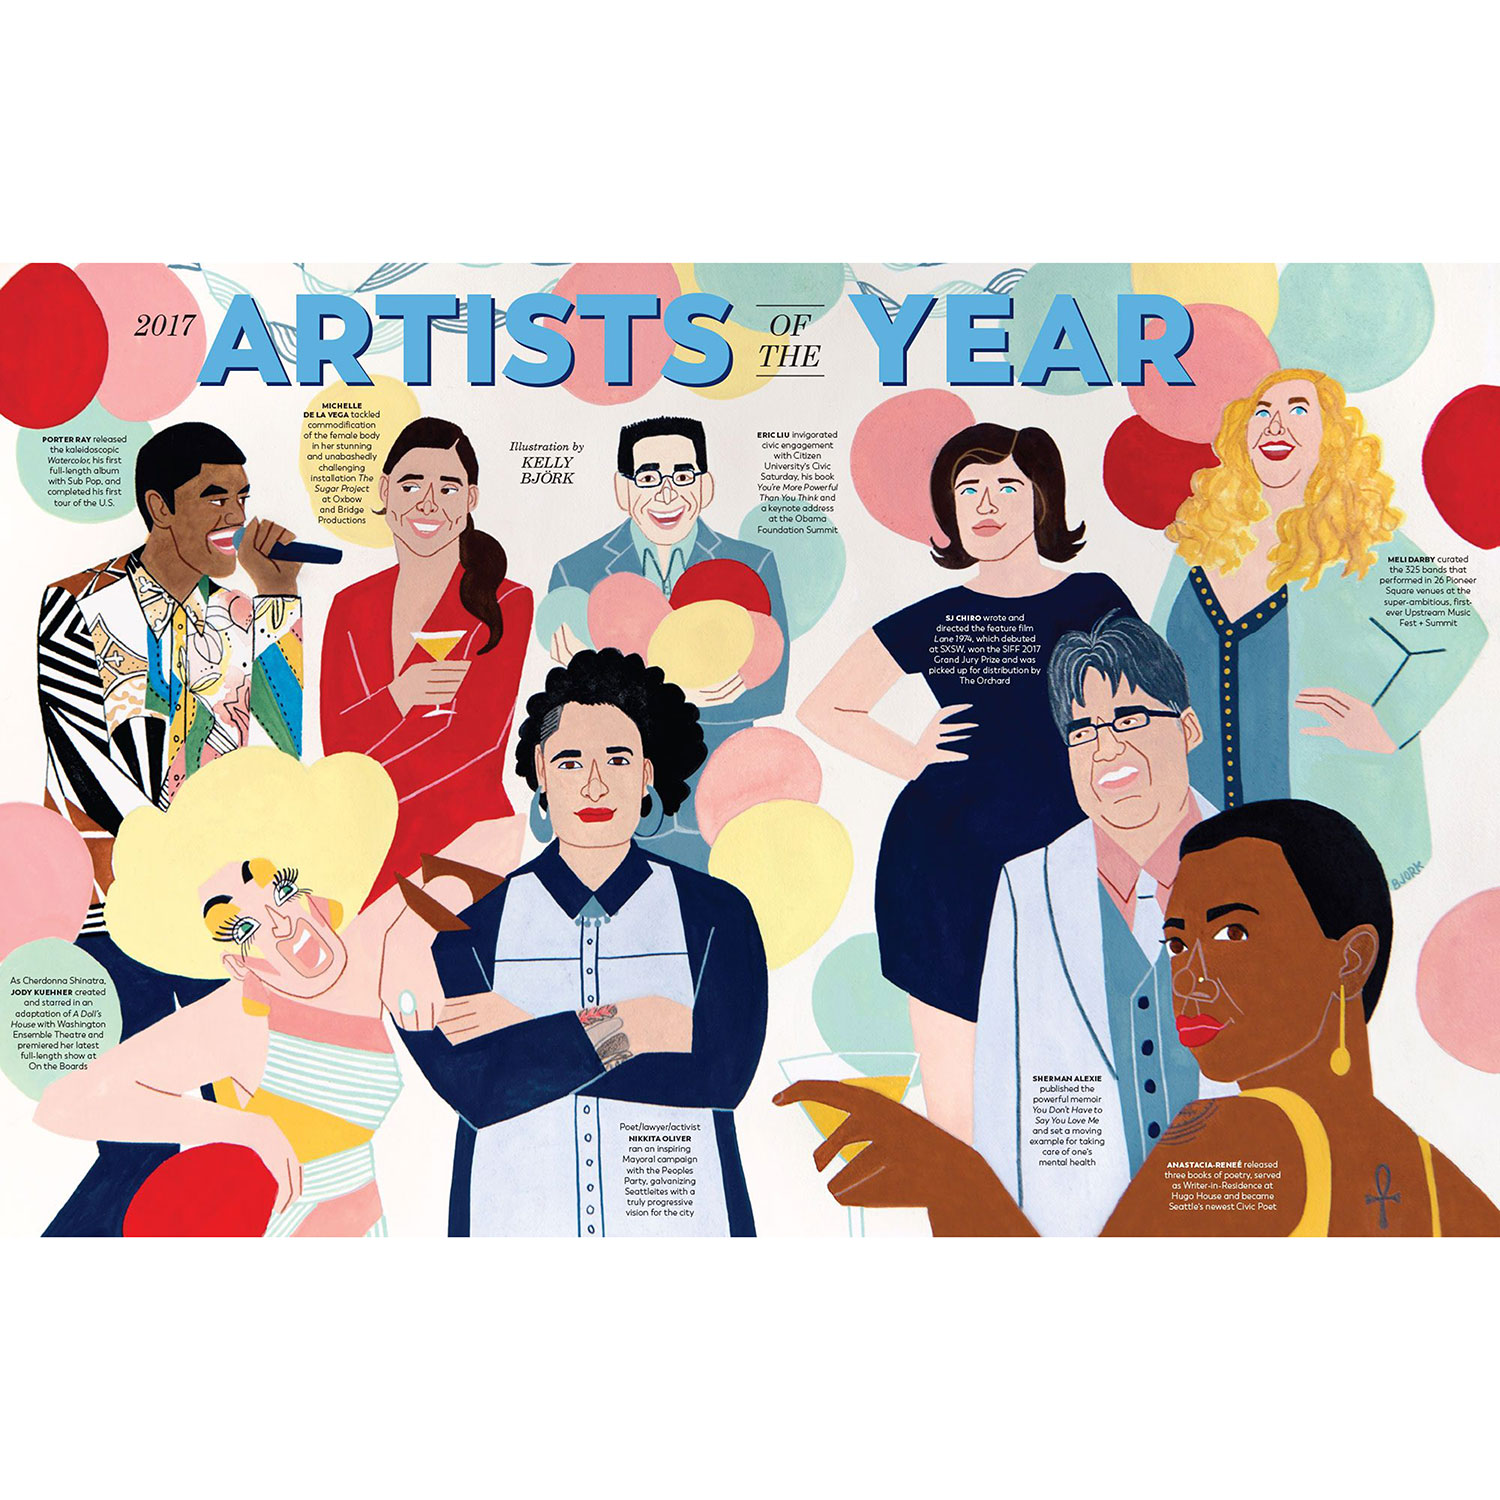 City Arts Magazine Feature: Artists of the Year December 2017